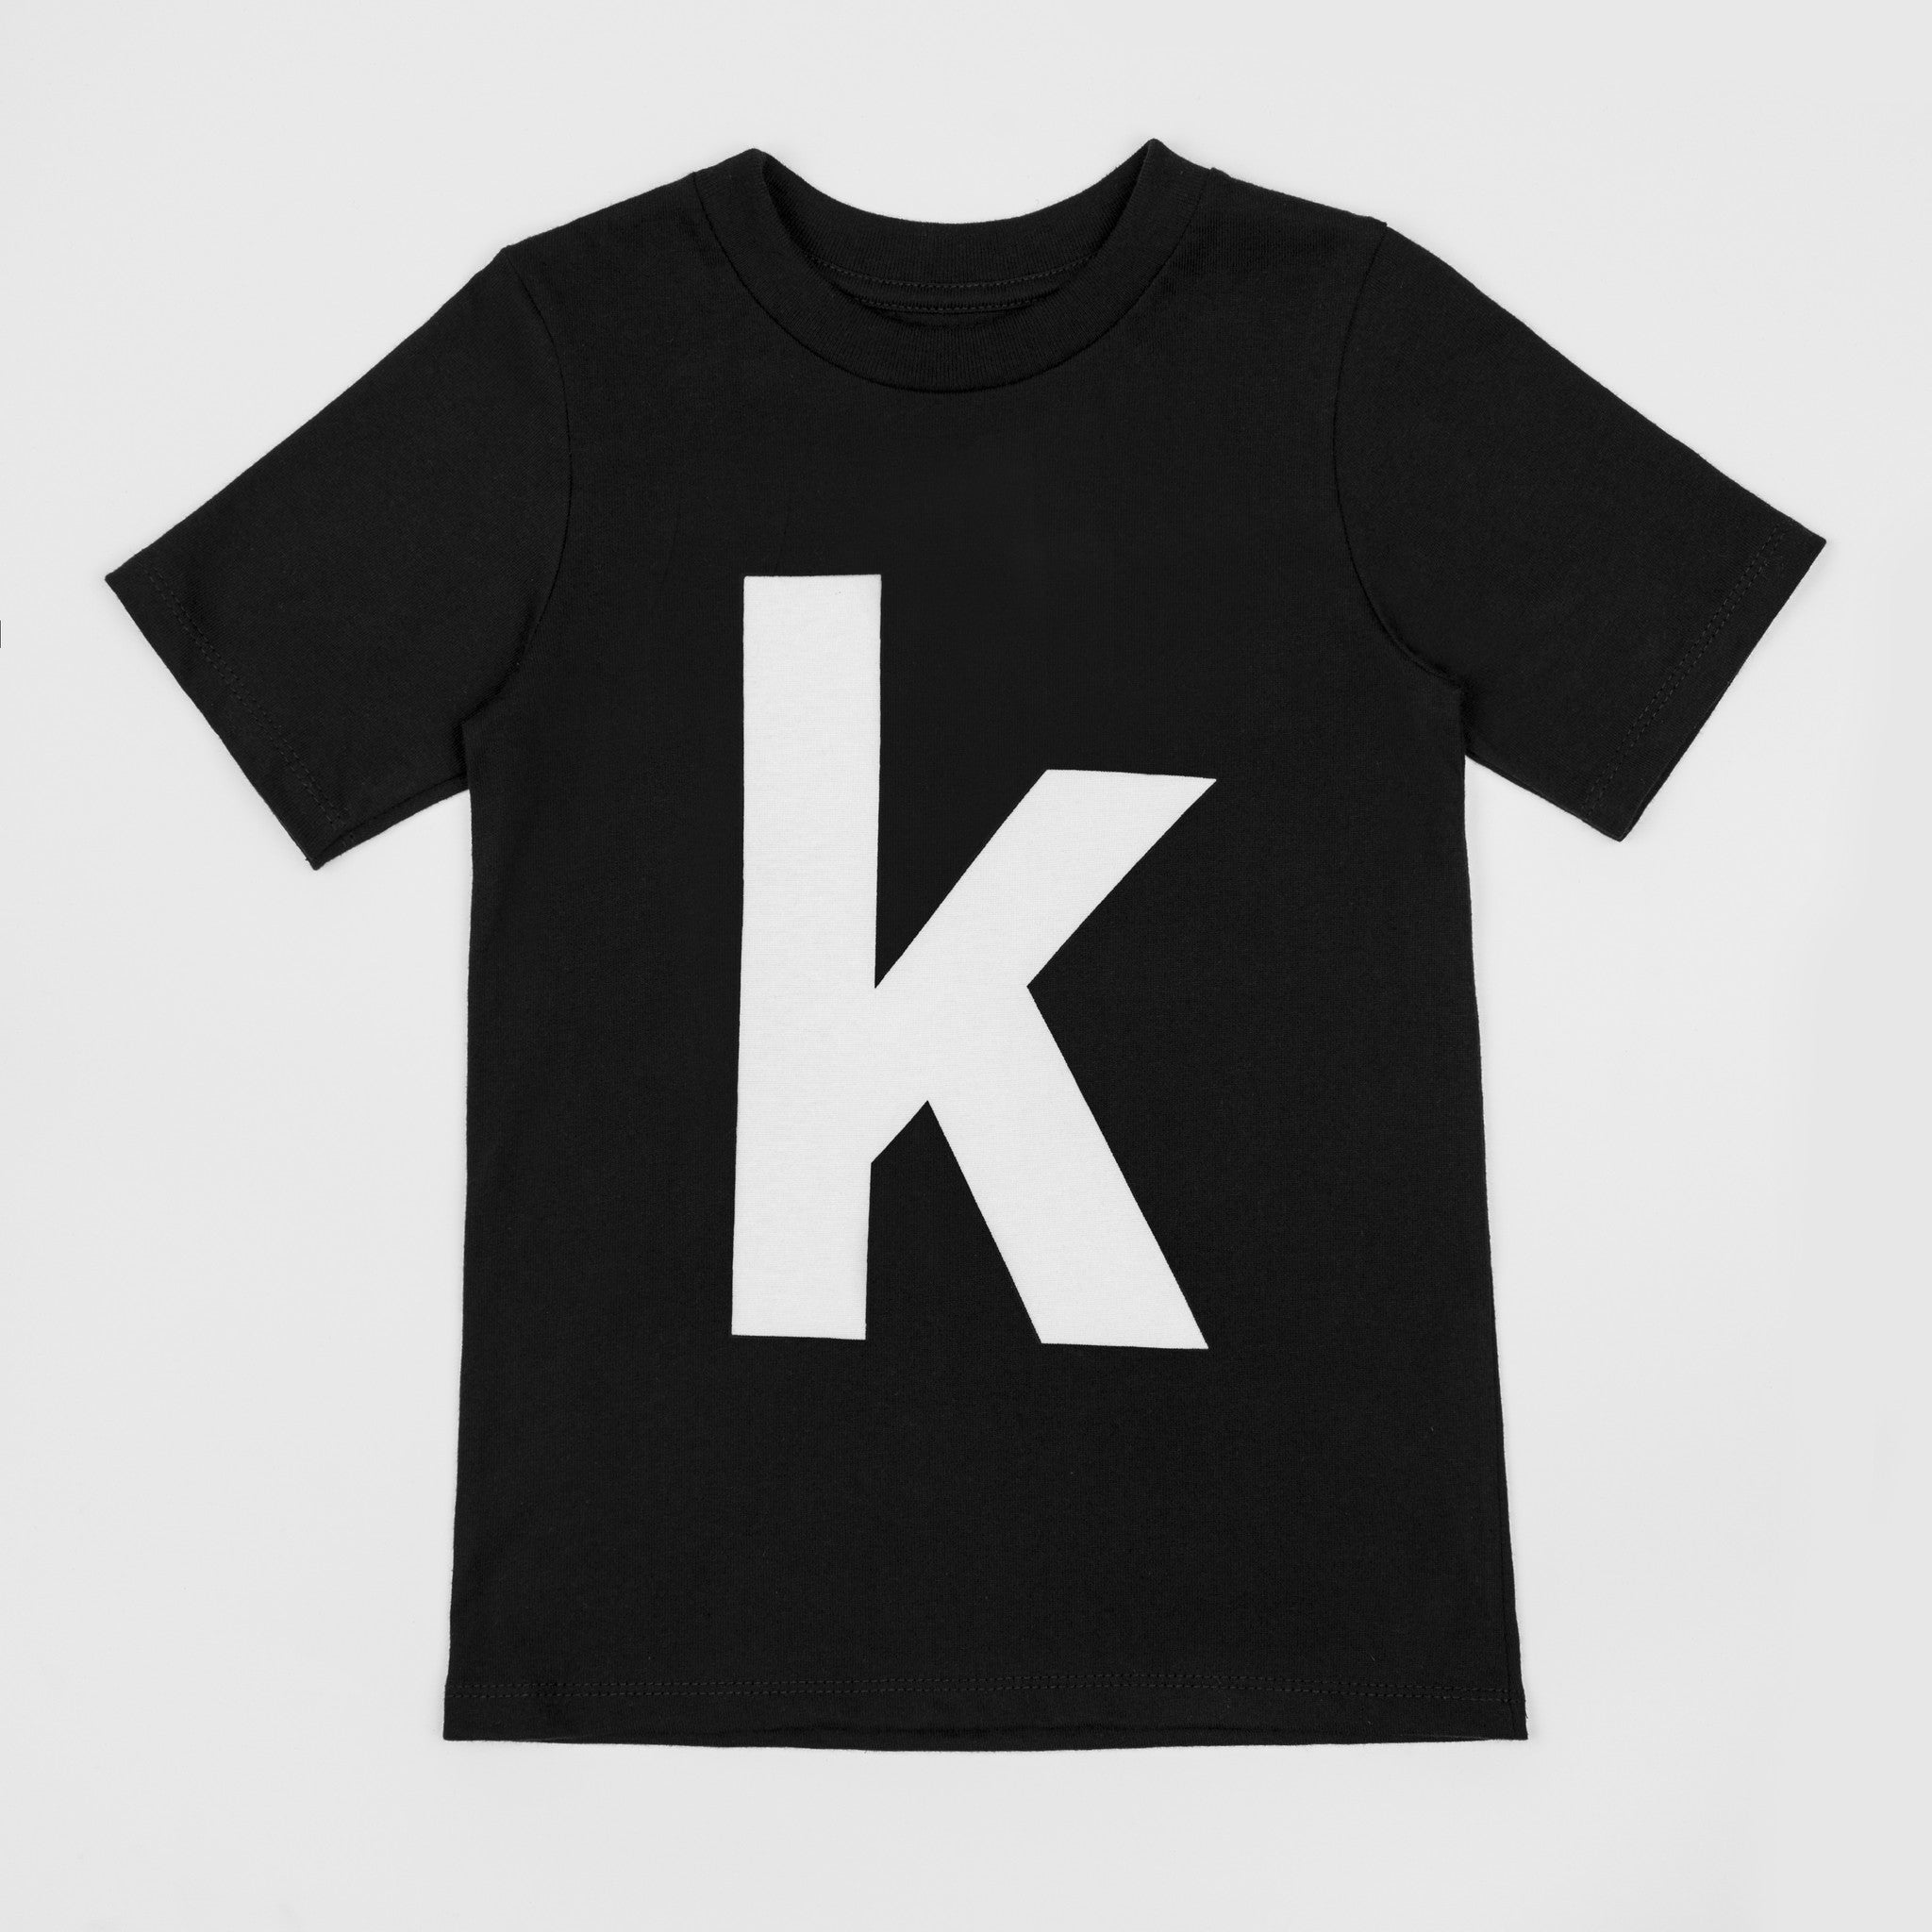 Letter K Black T Shirt With White Print Numbers And Letters